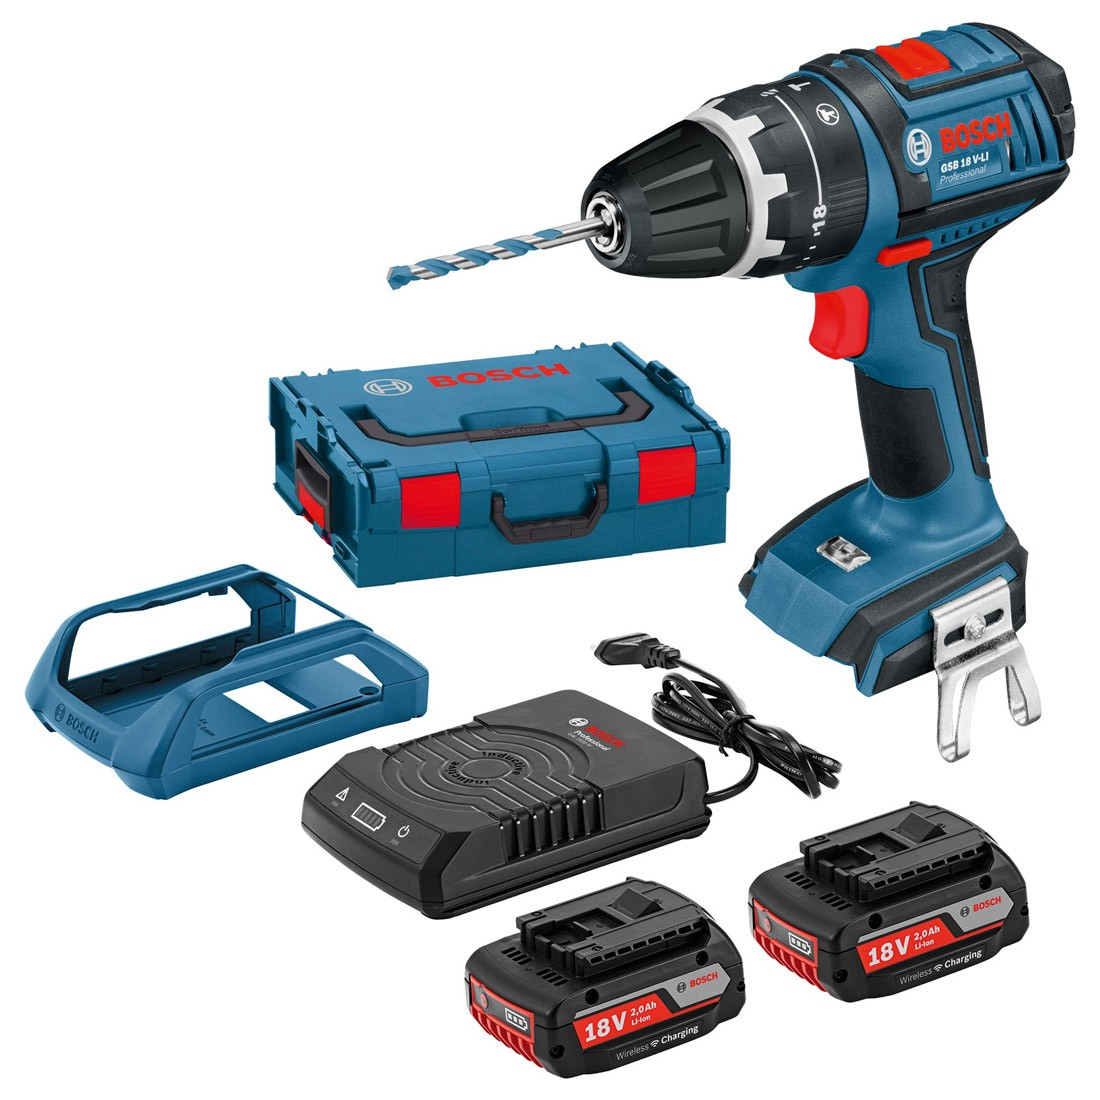 Bosch GSB 18 V-LI Combi Drill inc 2x 2.0Ah WIRELESS CHARGING 060186717N